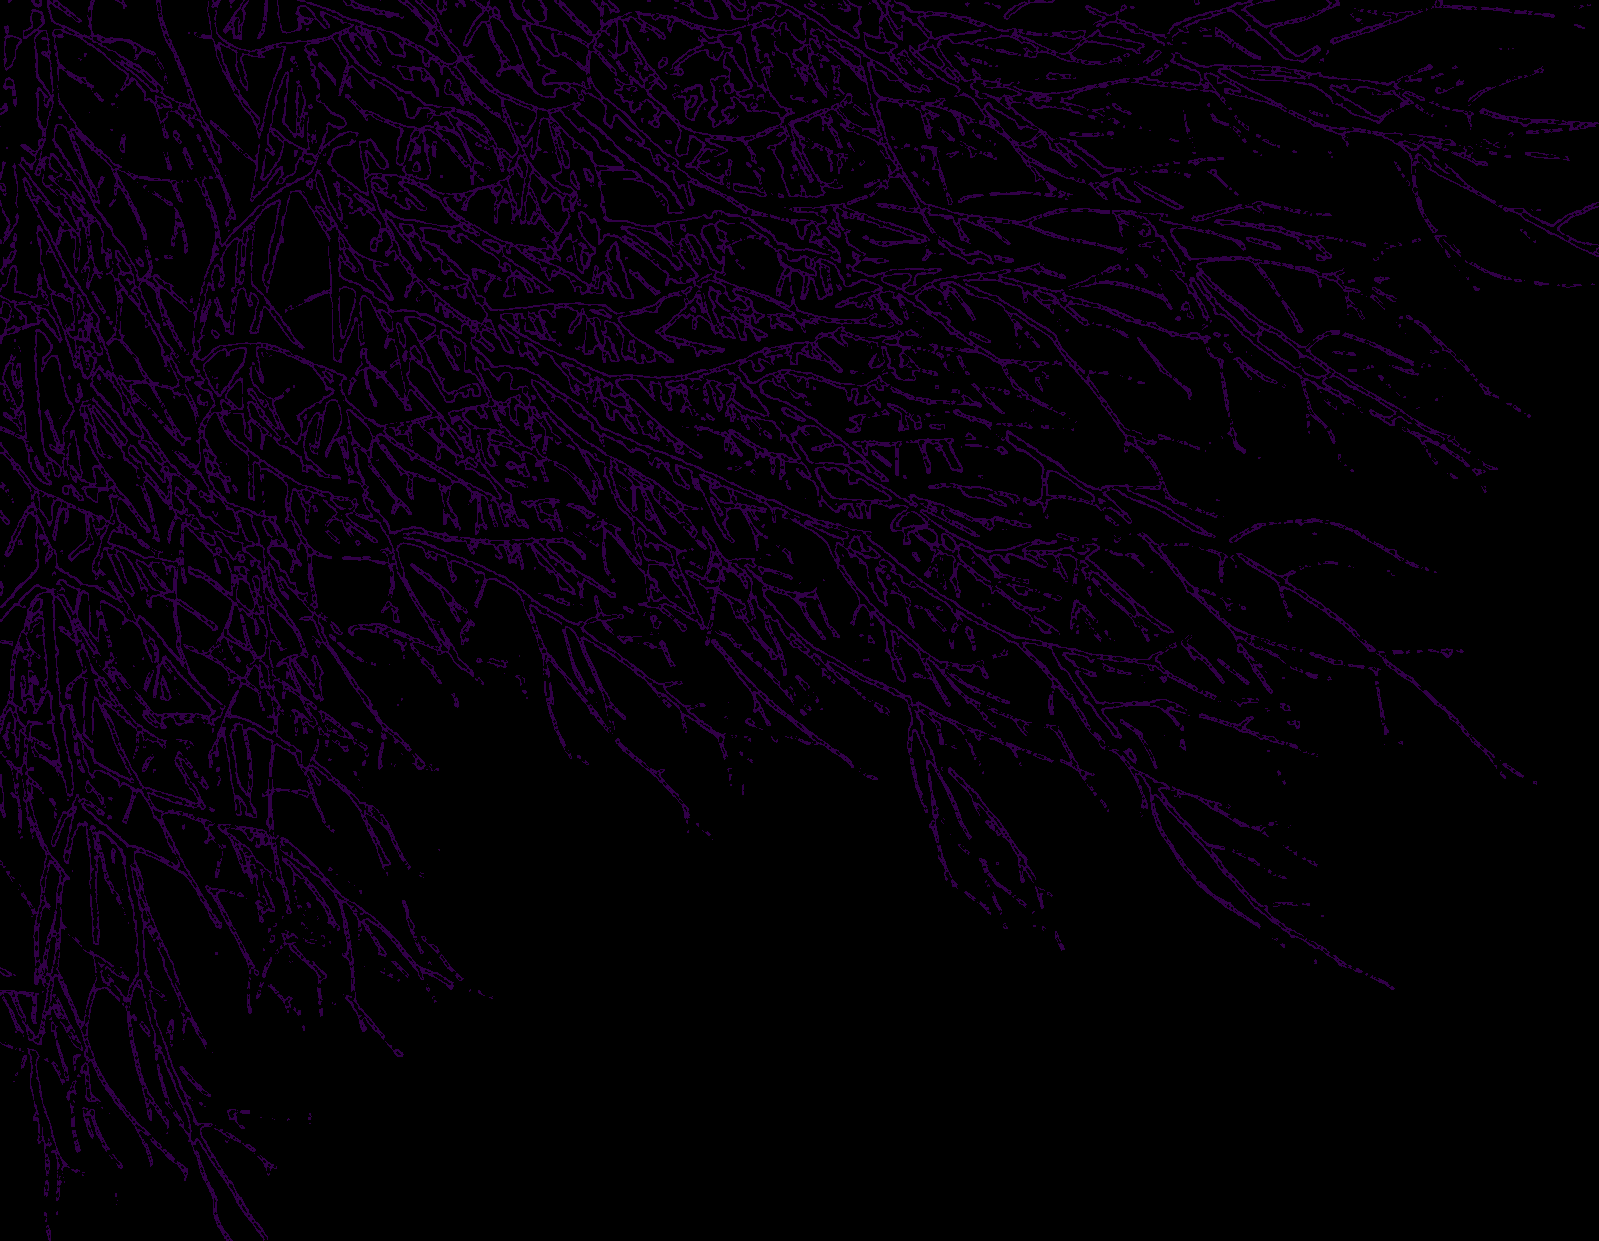 Purple And Black Backgrounds Png - Dark Purple Background - PowerPoint Backgrounds for Free ...